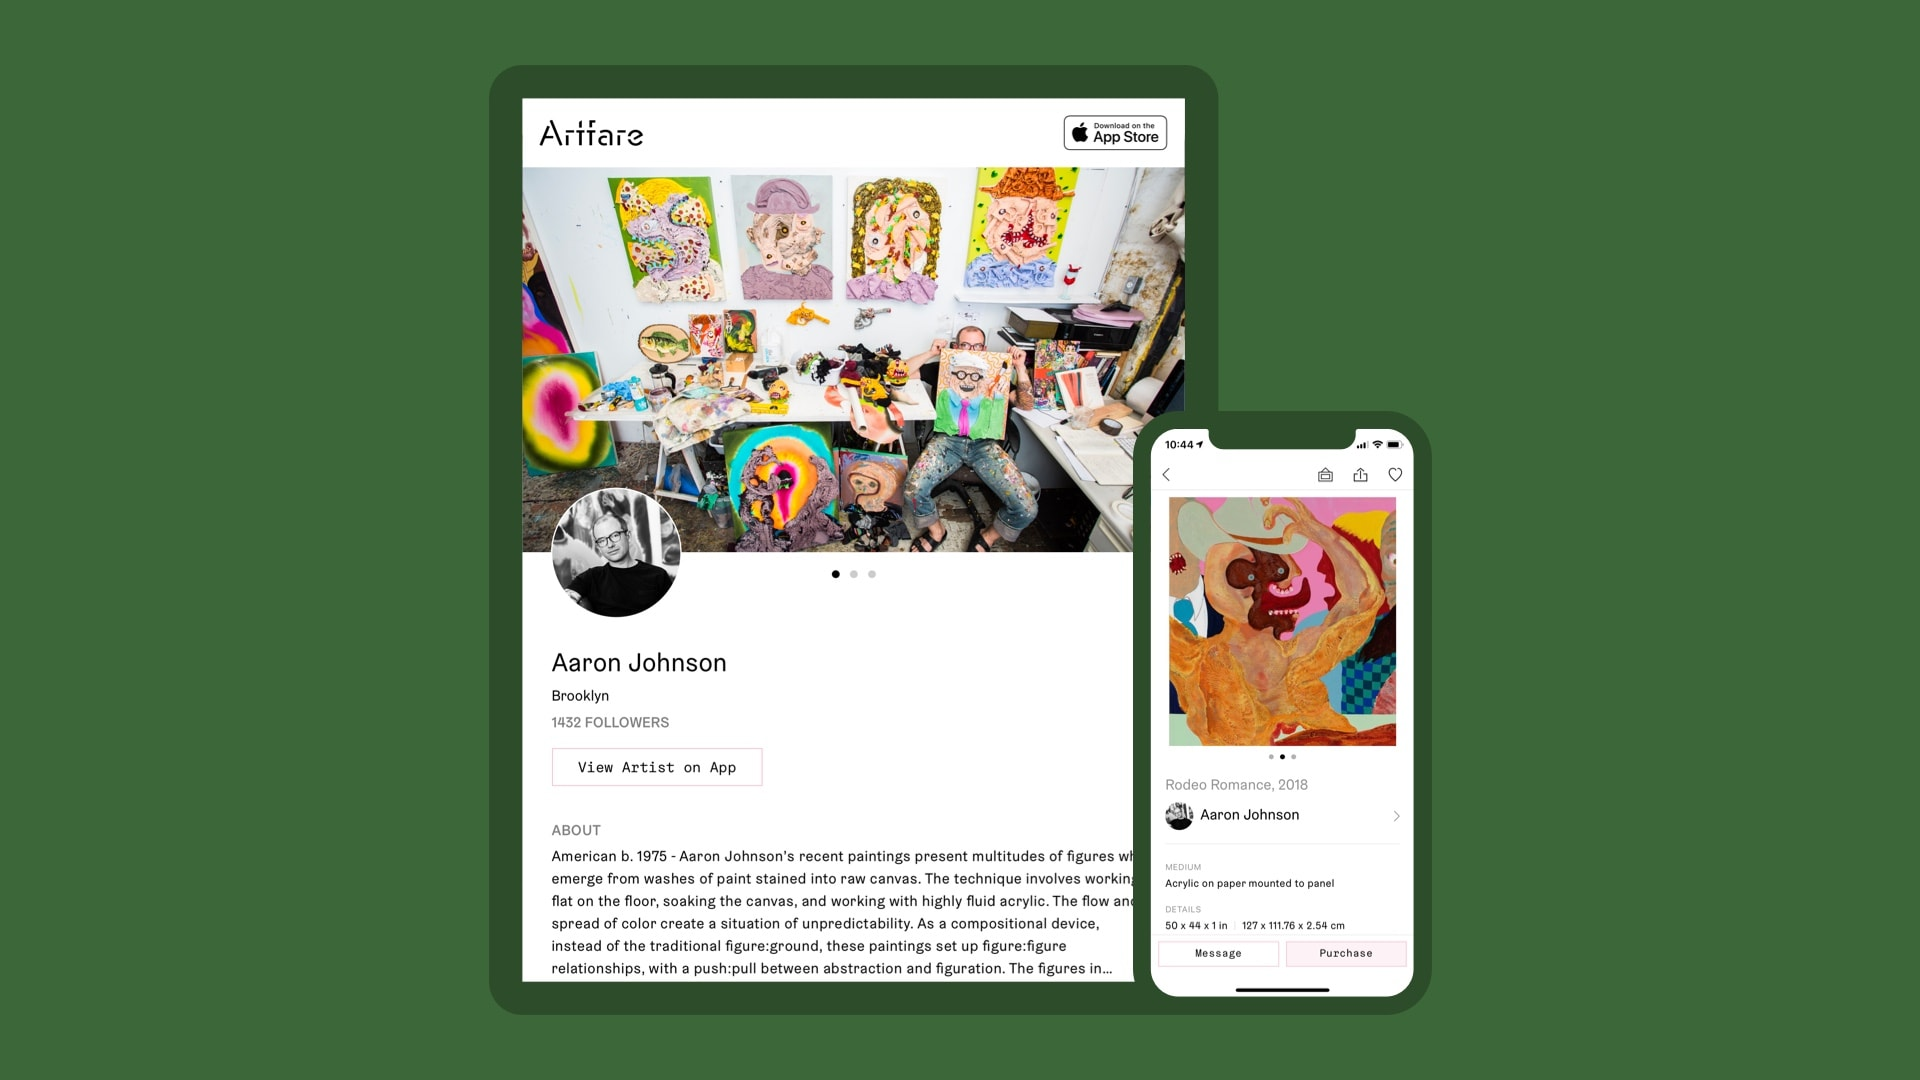 Artfare tablet Artist Profile and Art Detail screen